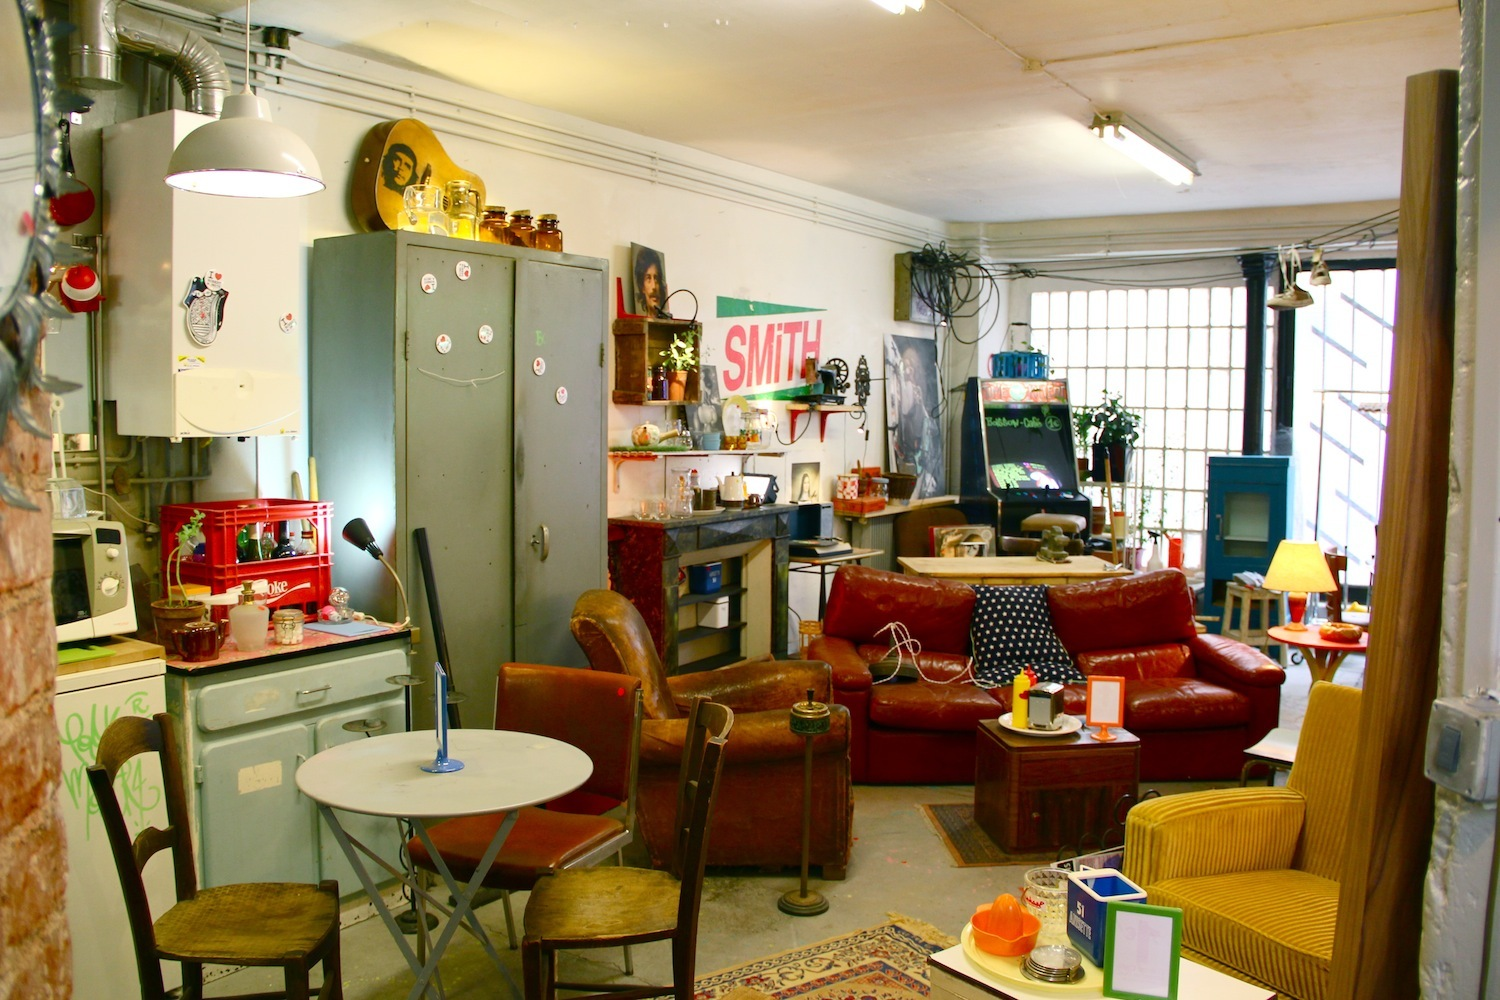 Magasin Meuble Vintage Paris Mobilier Vintage Adresses Meubles Vintage Paris Shopping